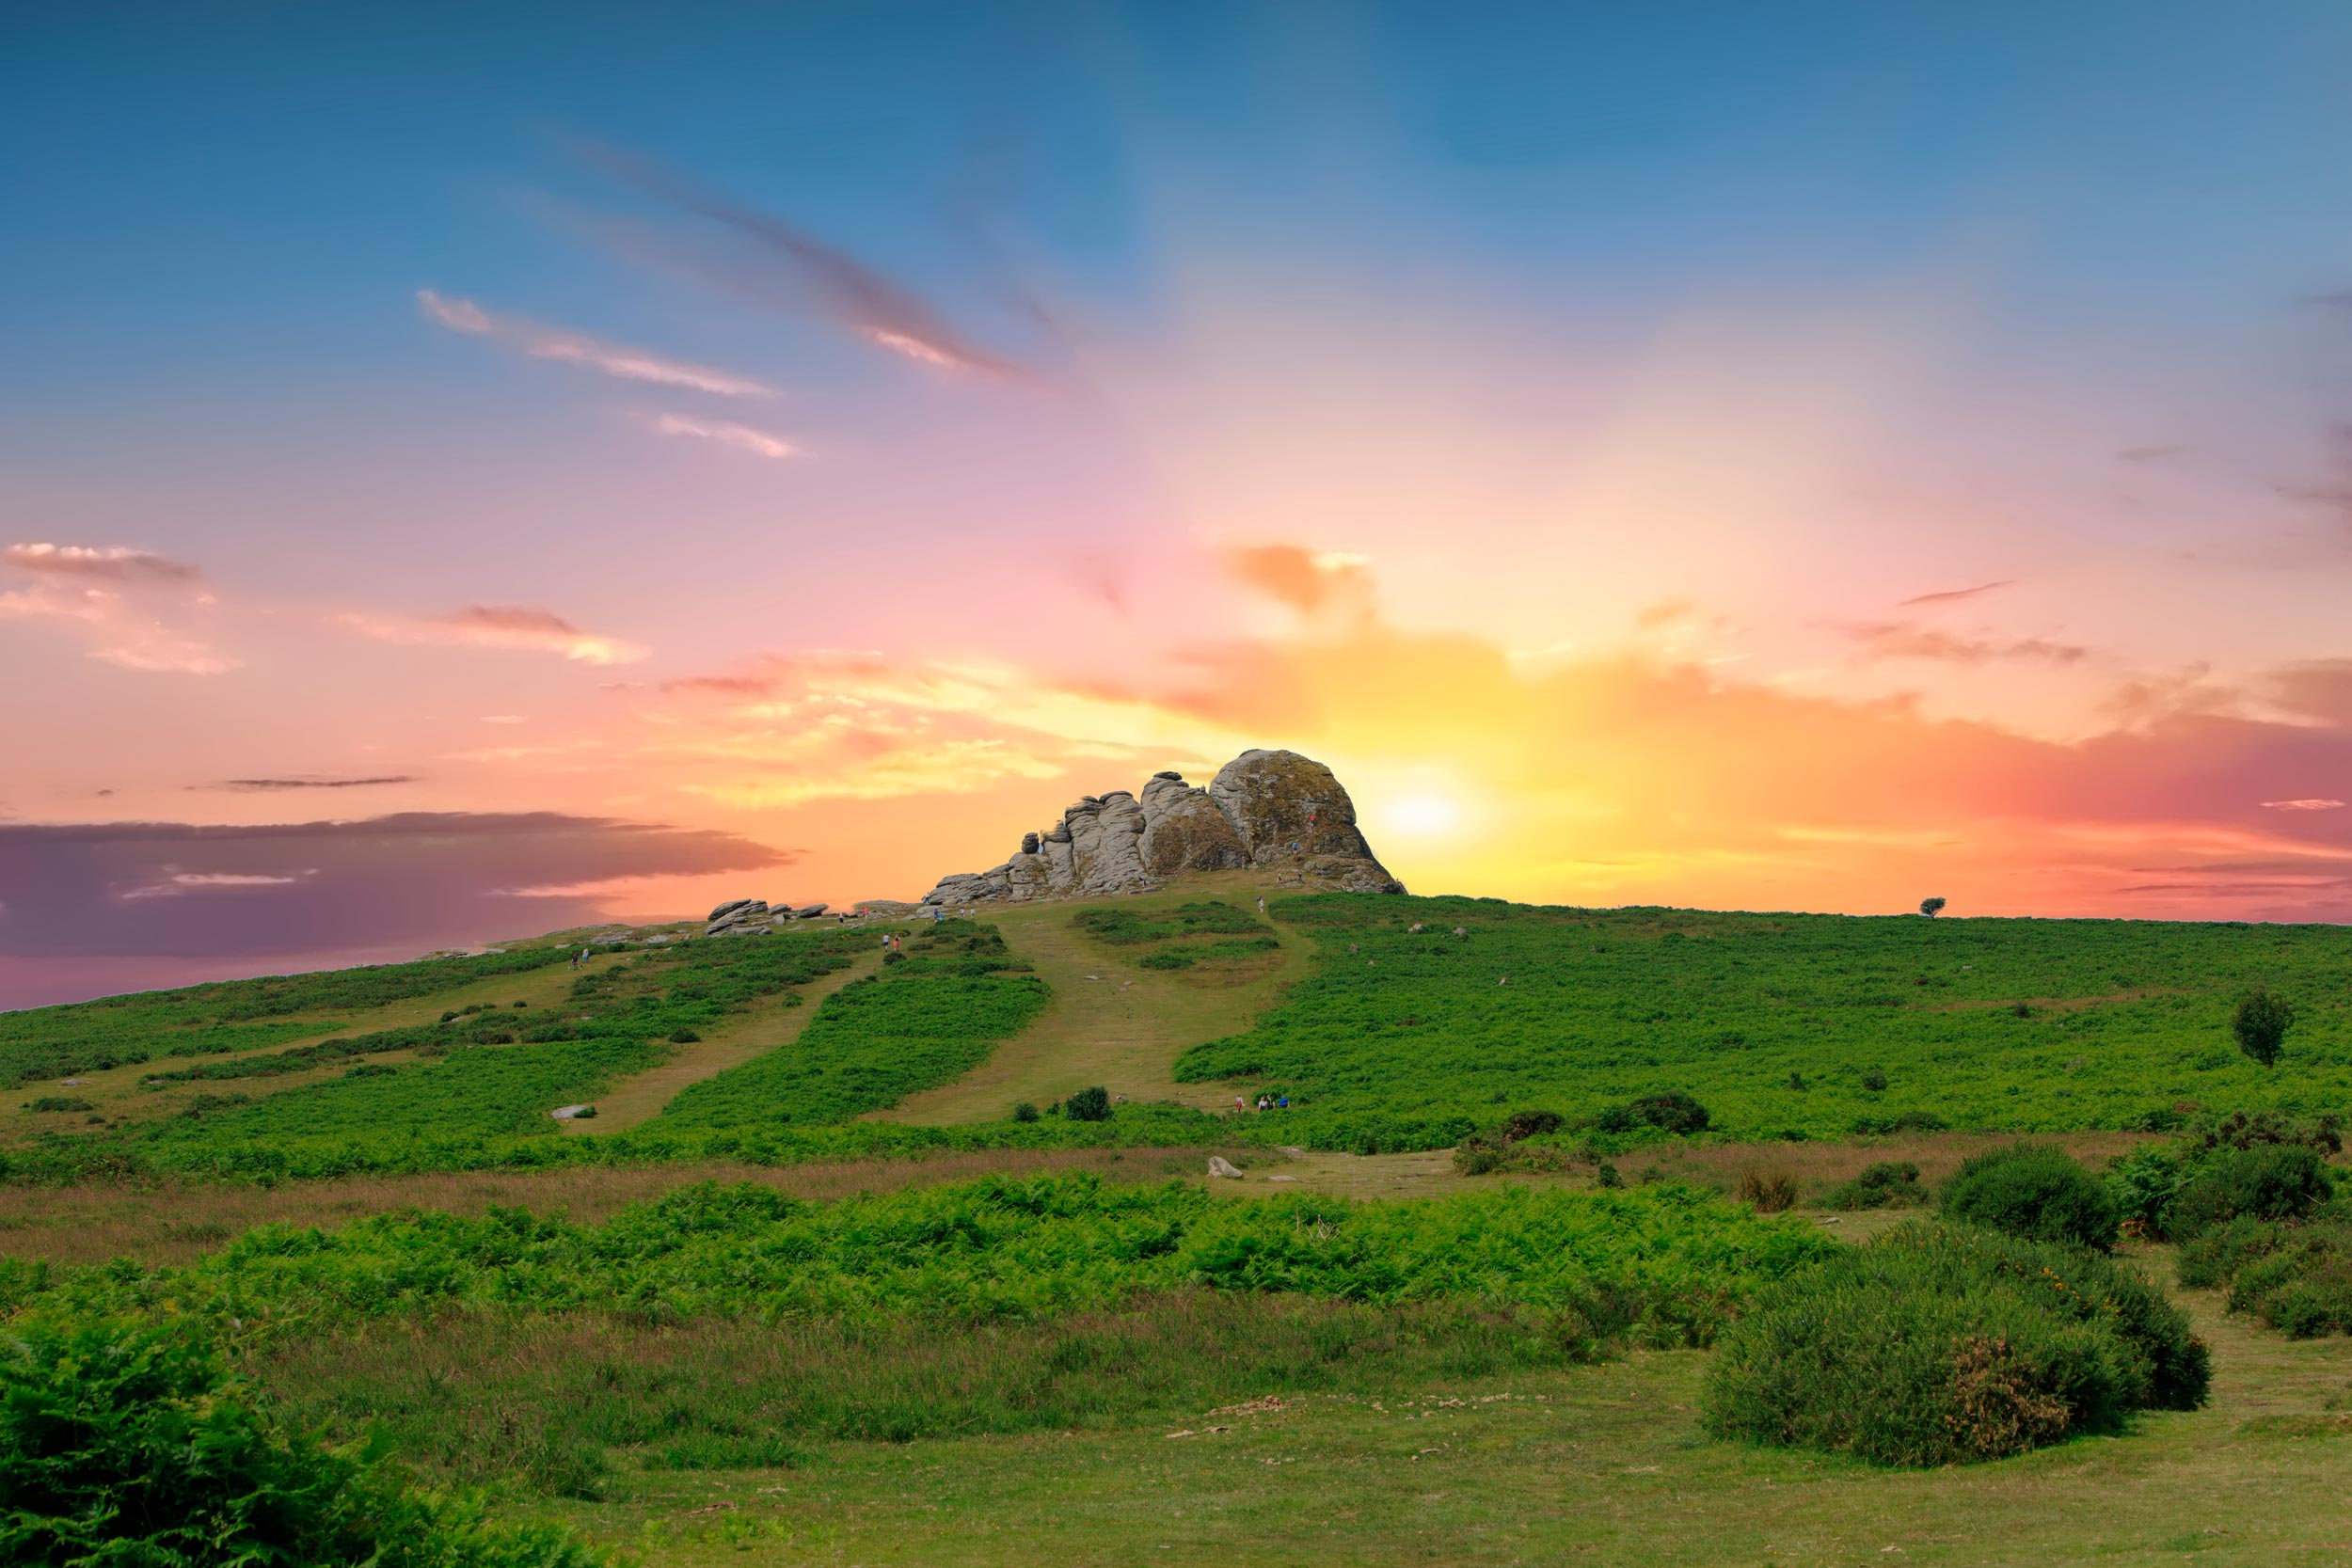 Haytor, Dartmoor, Britain's most south-westerly national park  (Paula French/Shutterstock)